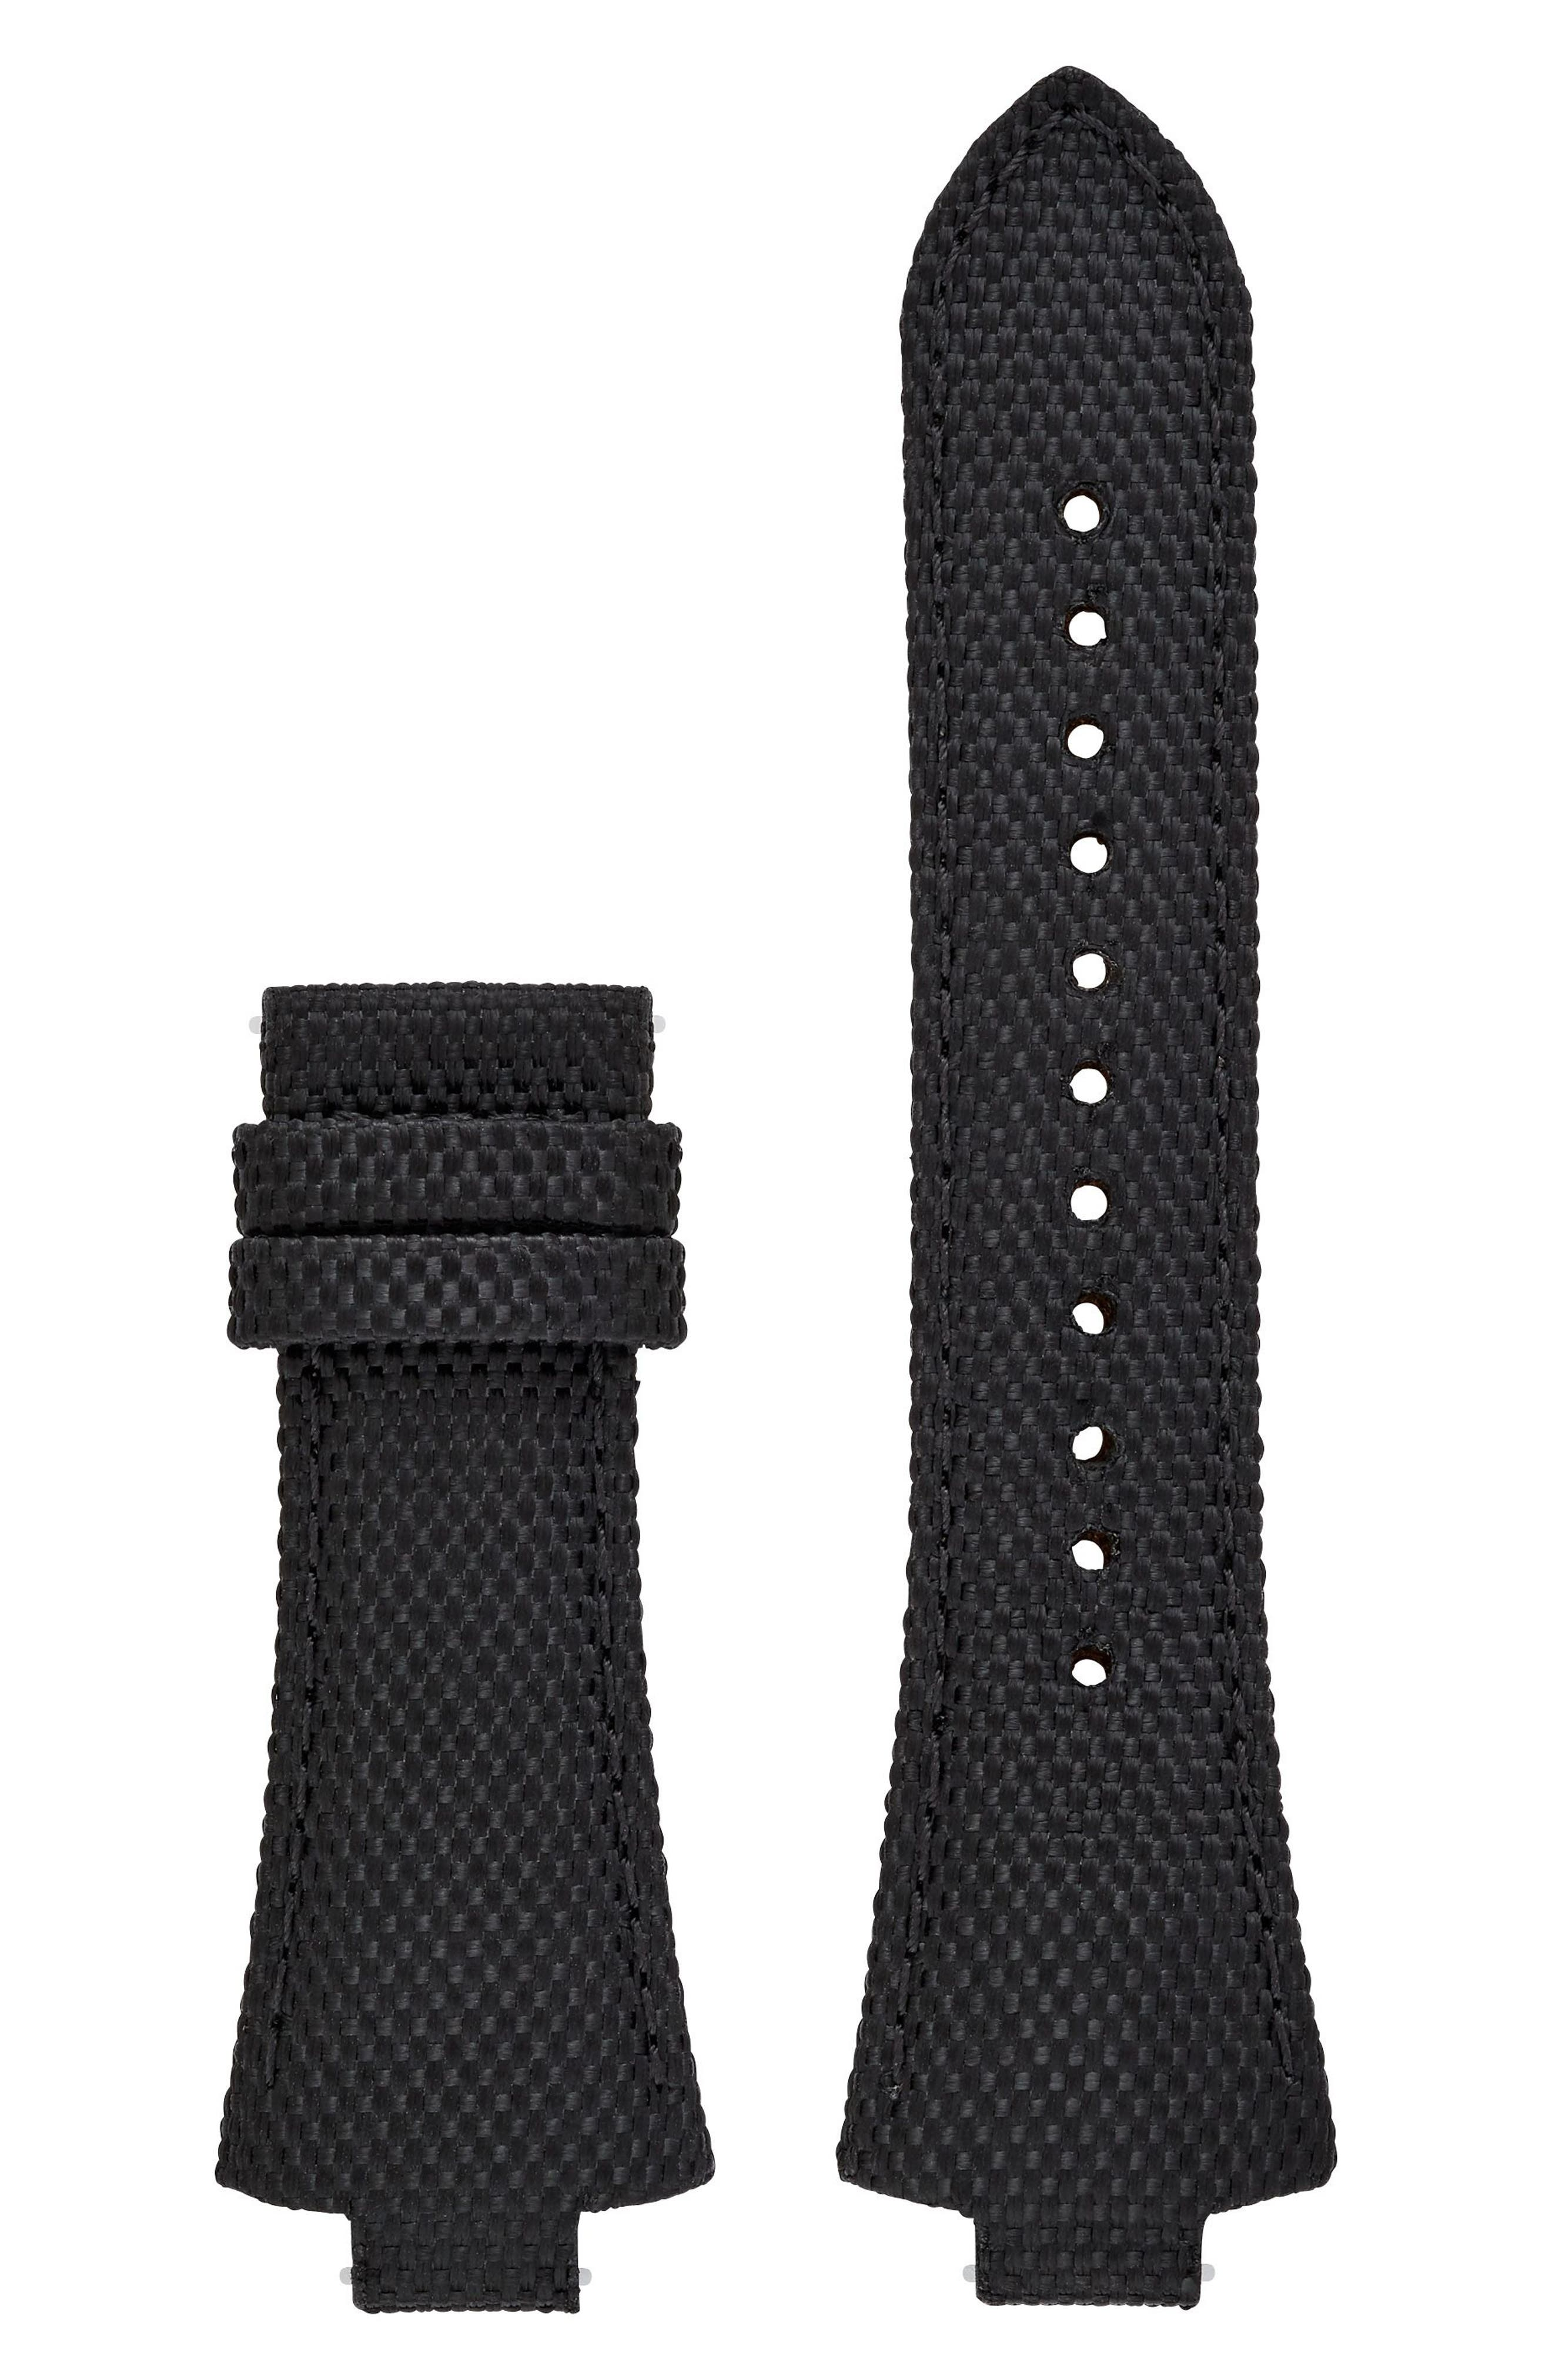 Main Image - Michael Kors Dylan Interchangeable Leather Strap